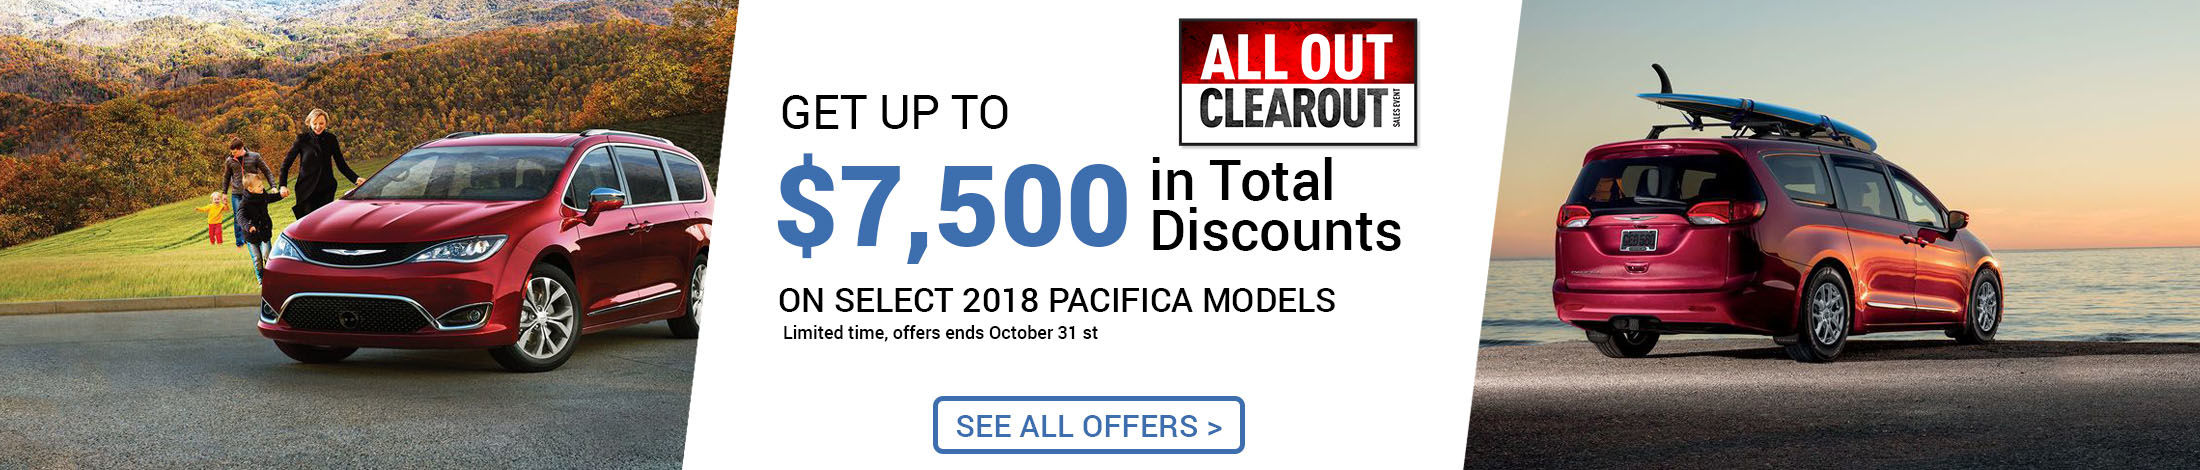 Chrysler all clearout event